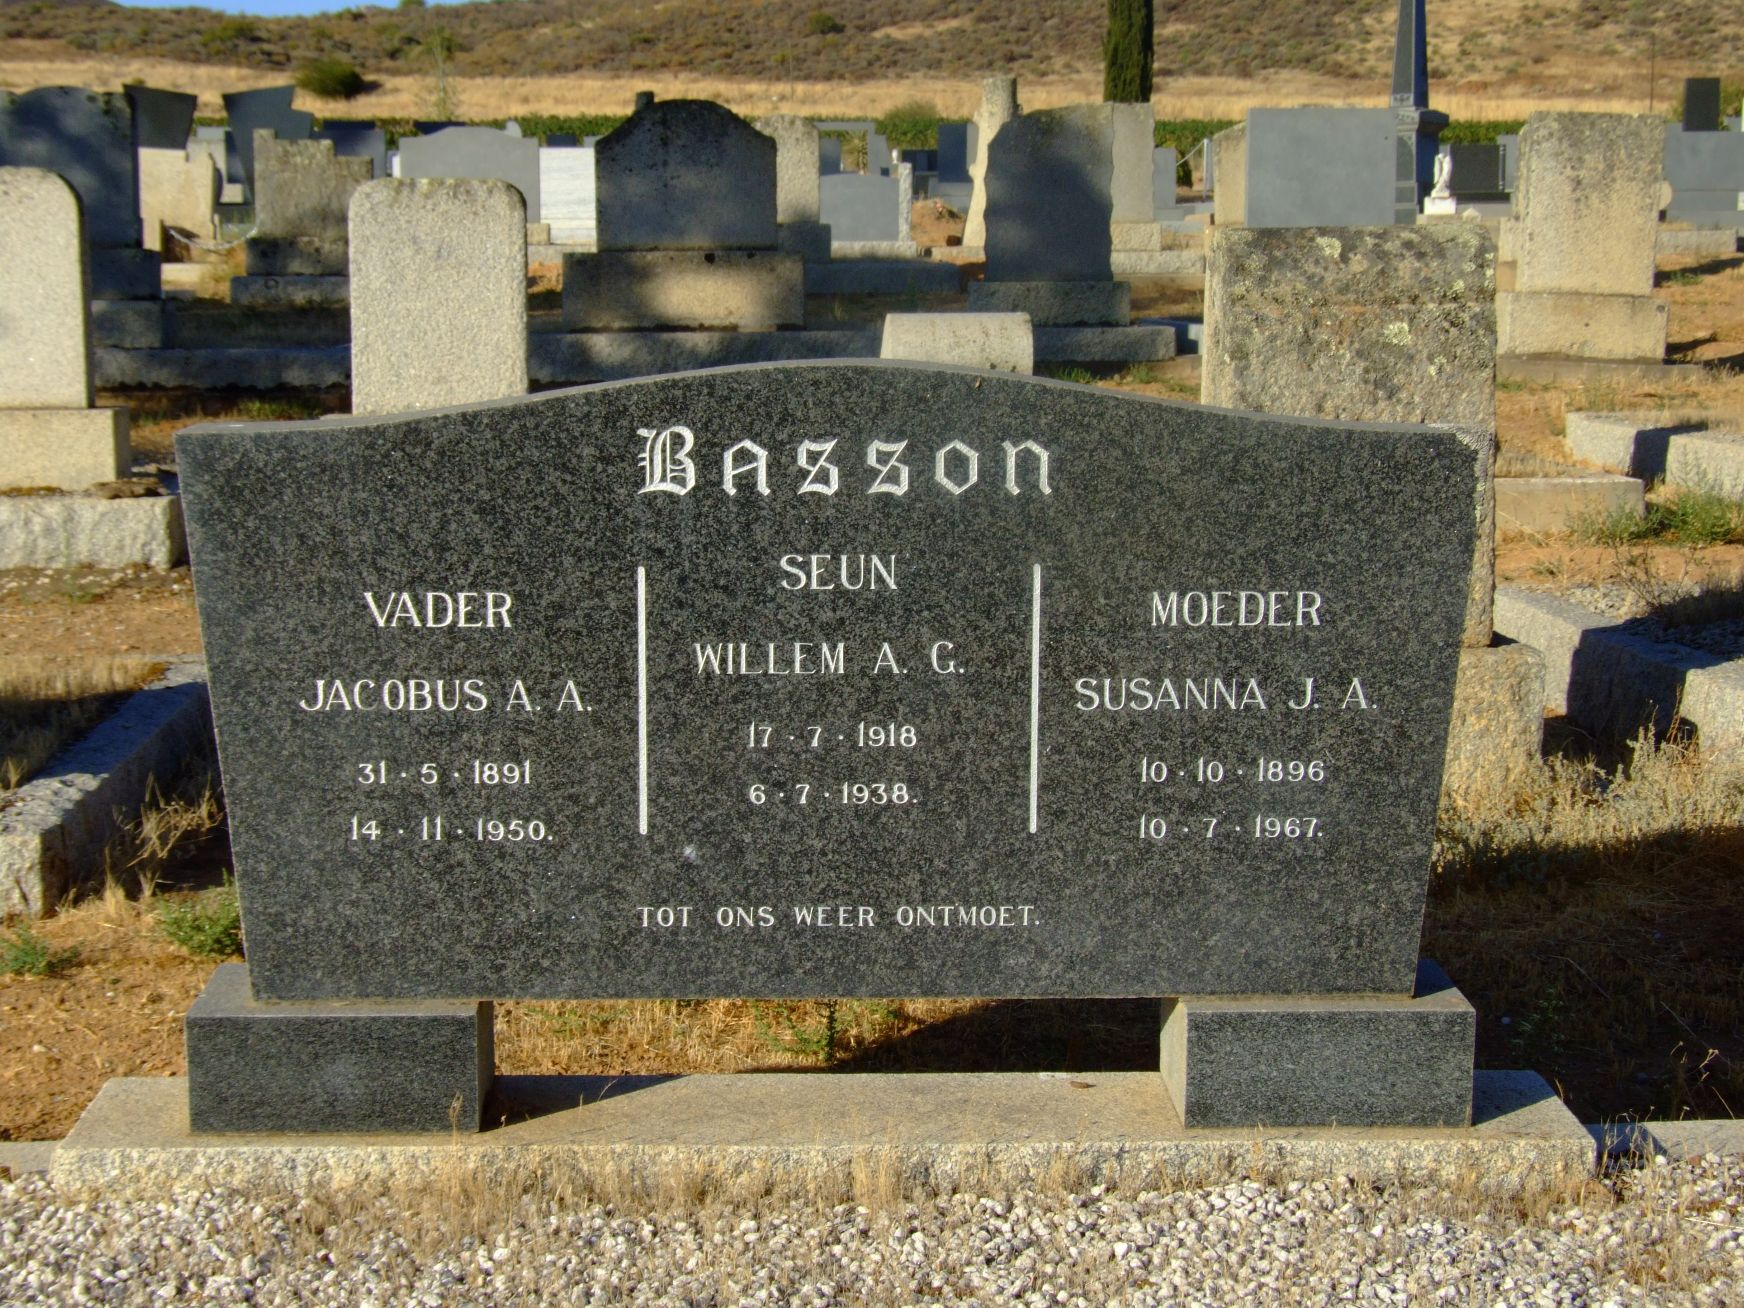 Basson, Jacobus A. A. and Willem A.C. and Susanna J. A